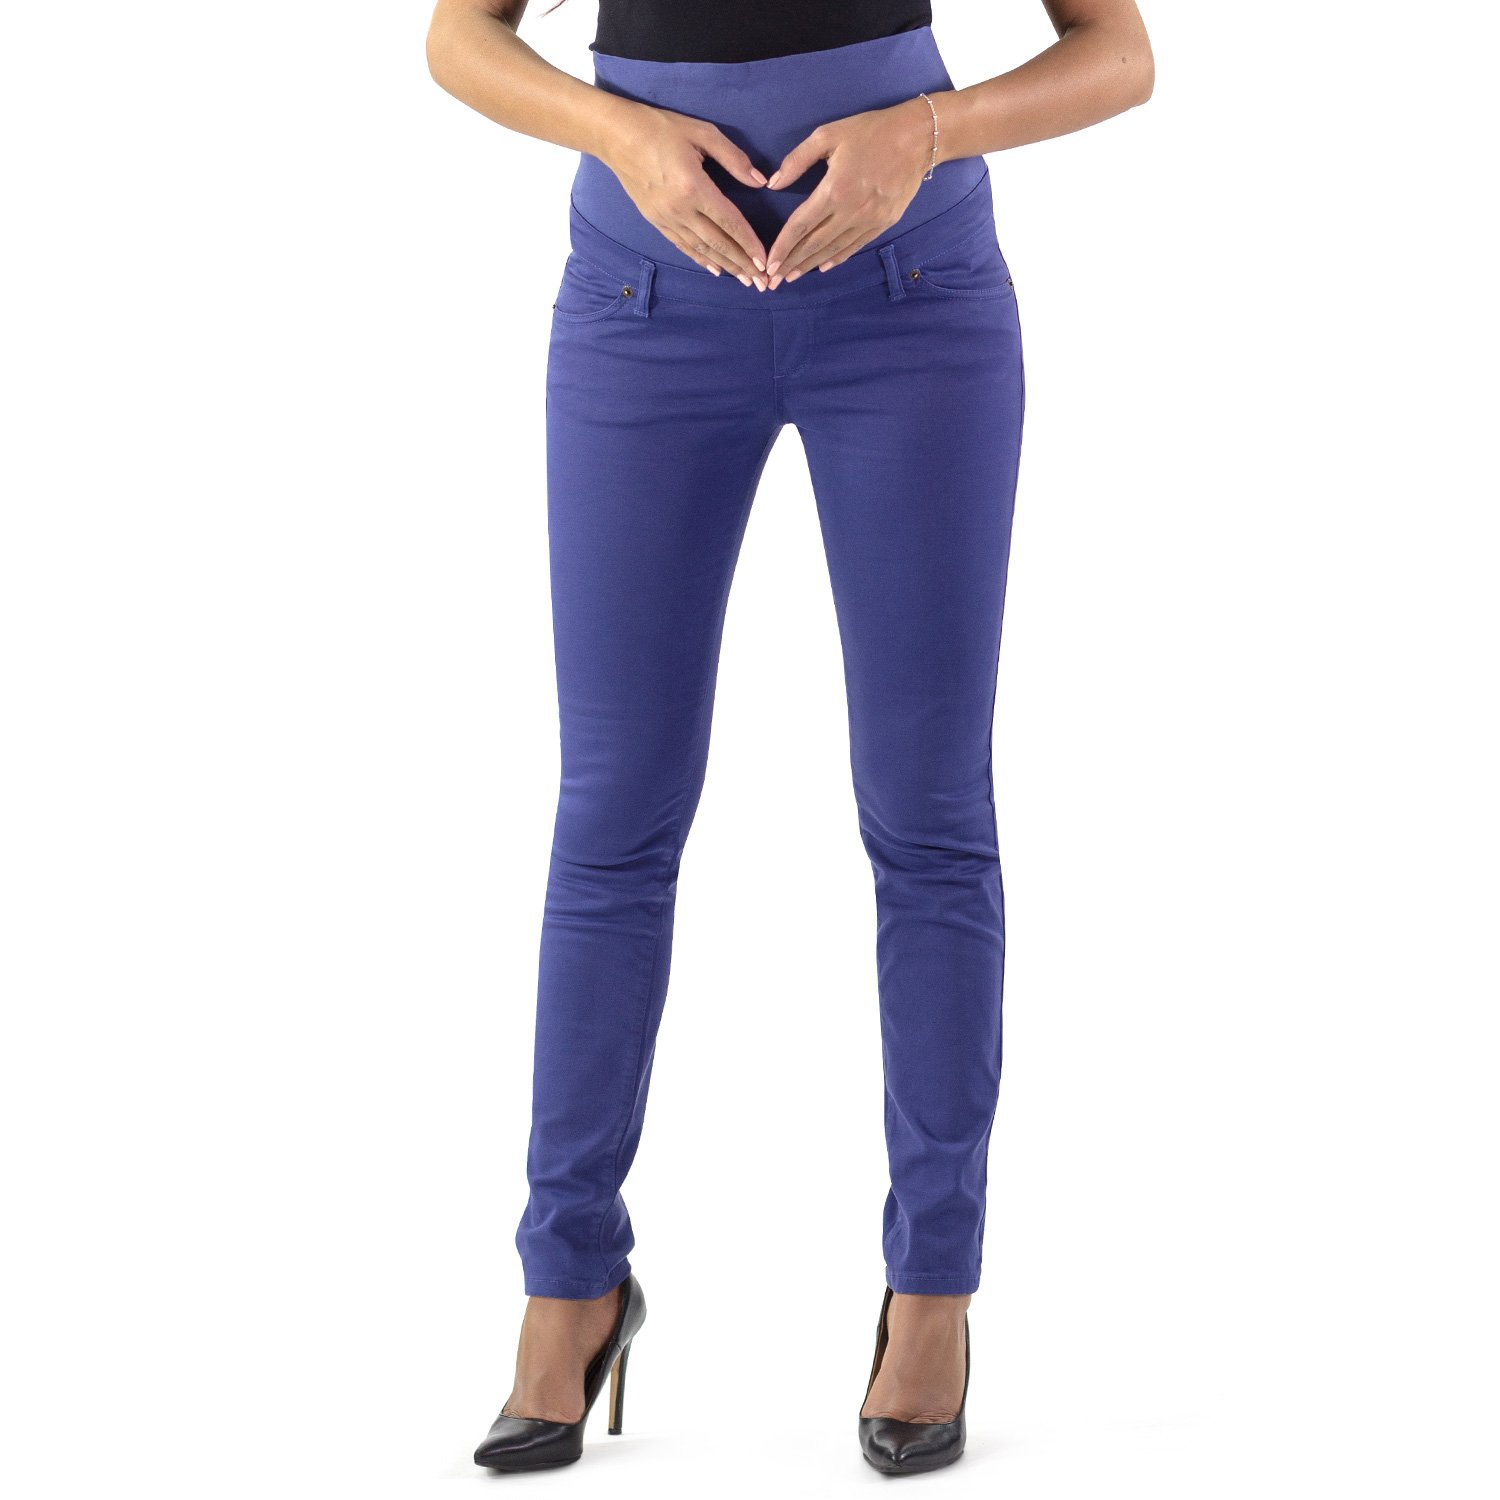 96943d3095454 MAMAJEANS - Venezia Skinny and Comfortable Maternity Pants with Real  Pockets - Made in Italy at Amazon Women's Clothing store: